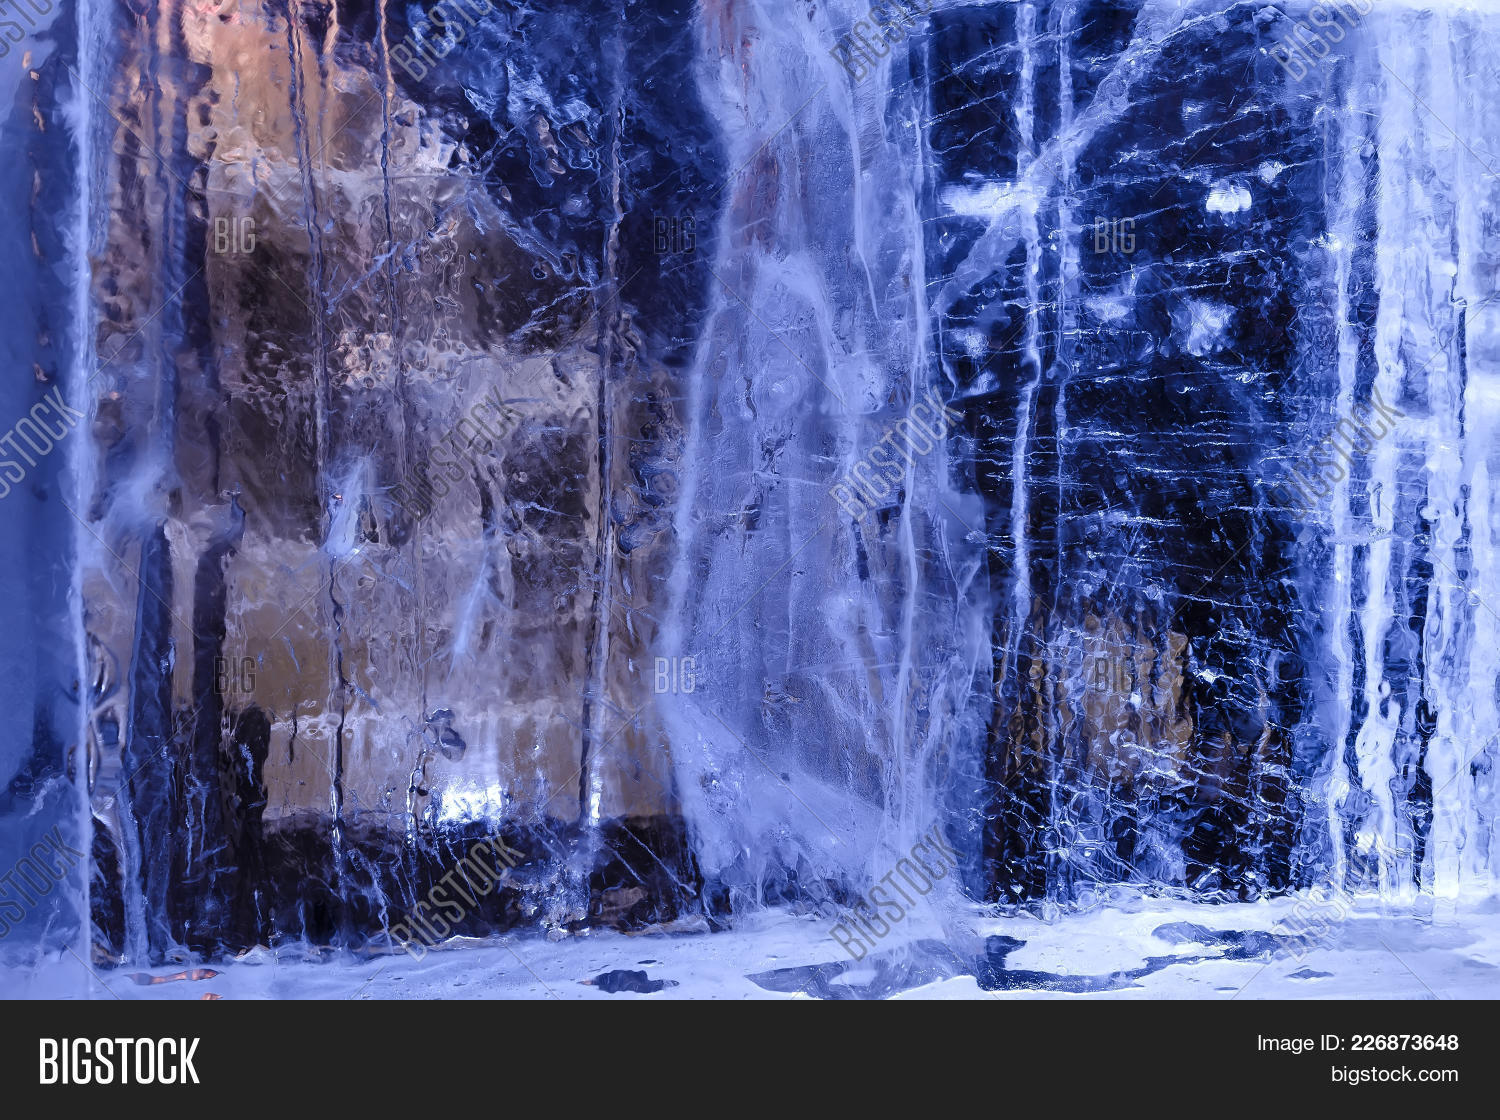 Abstract ice texture powerpoint template abstract ice texture p toneelgroepblik Images